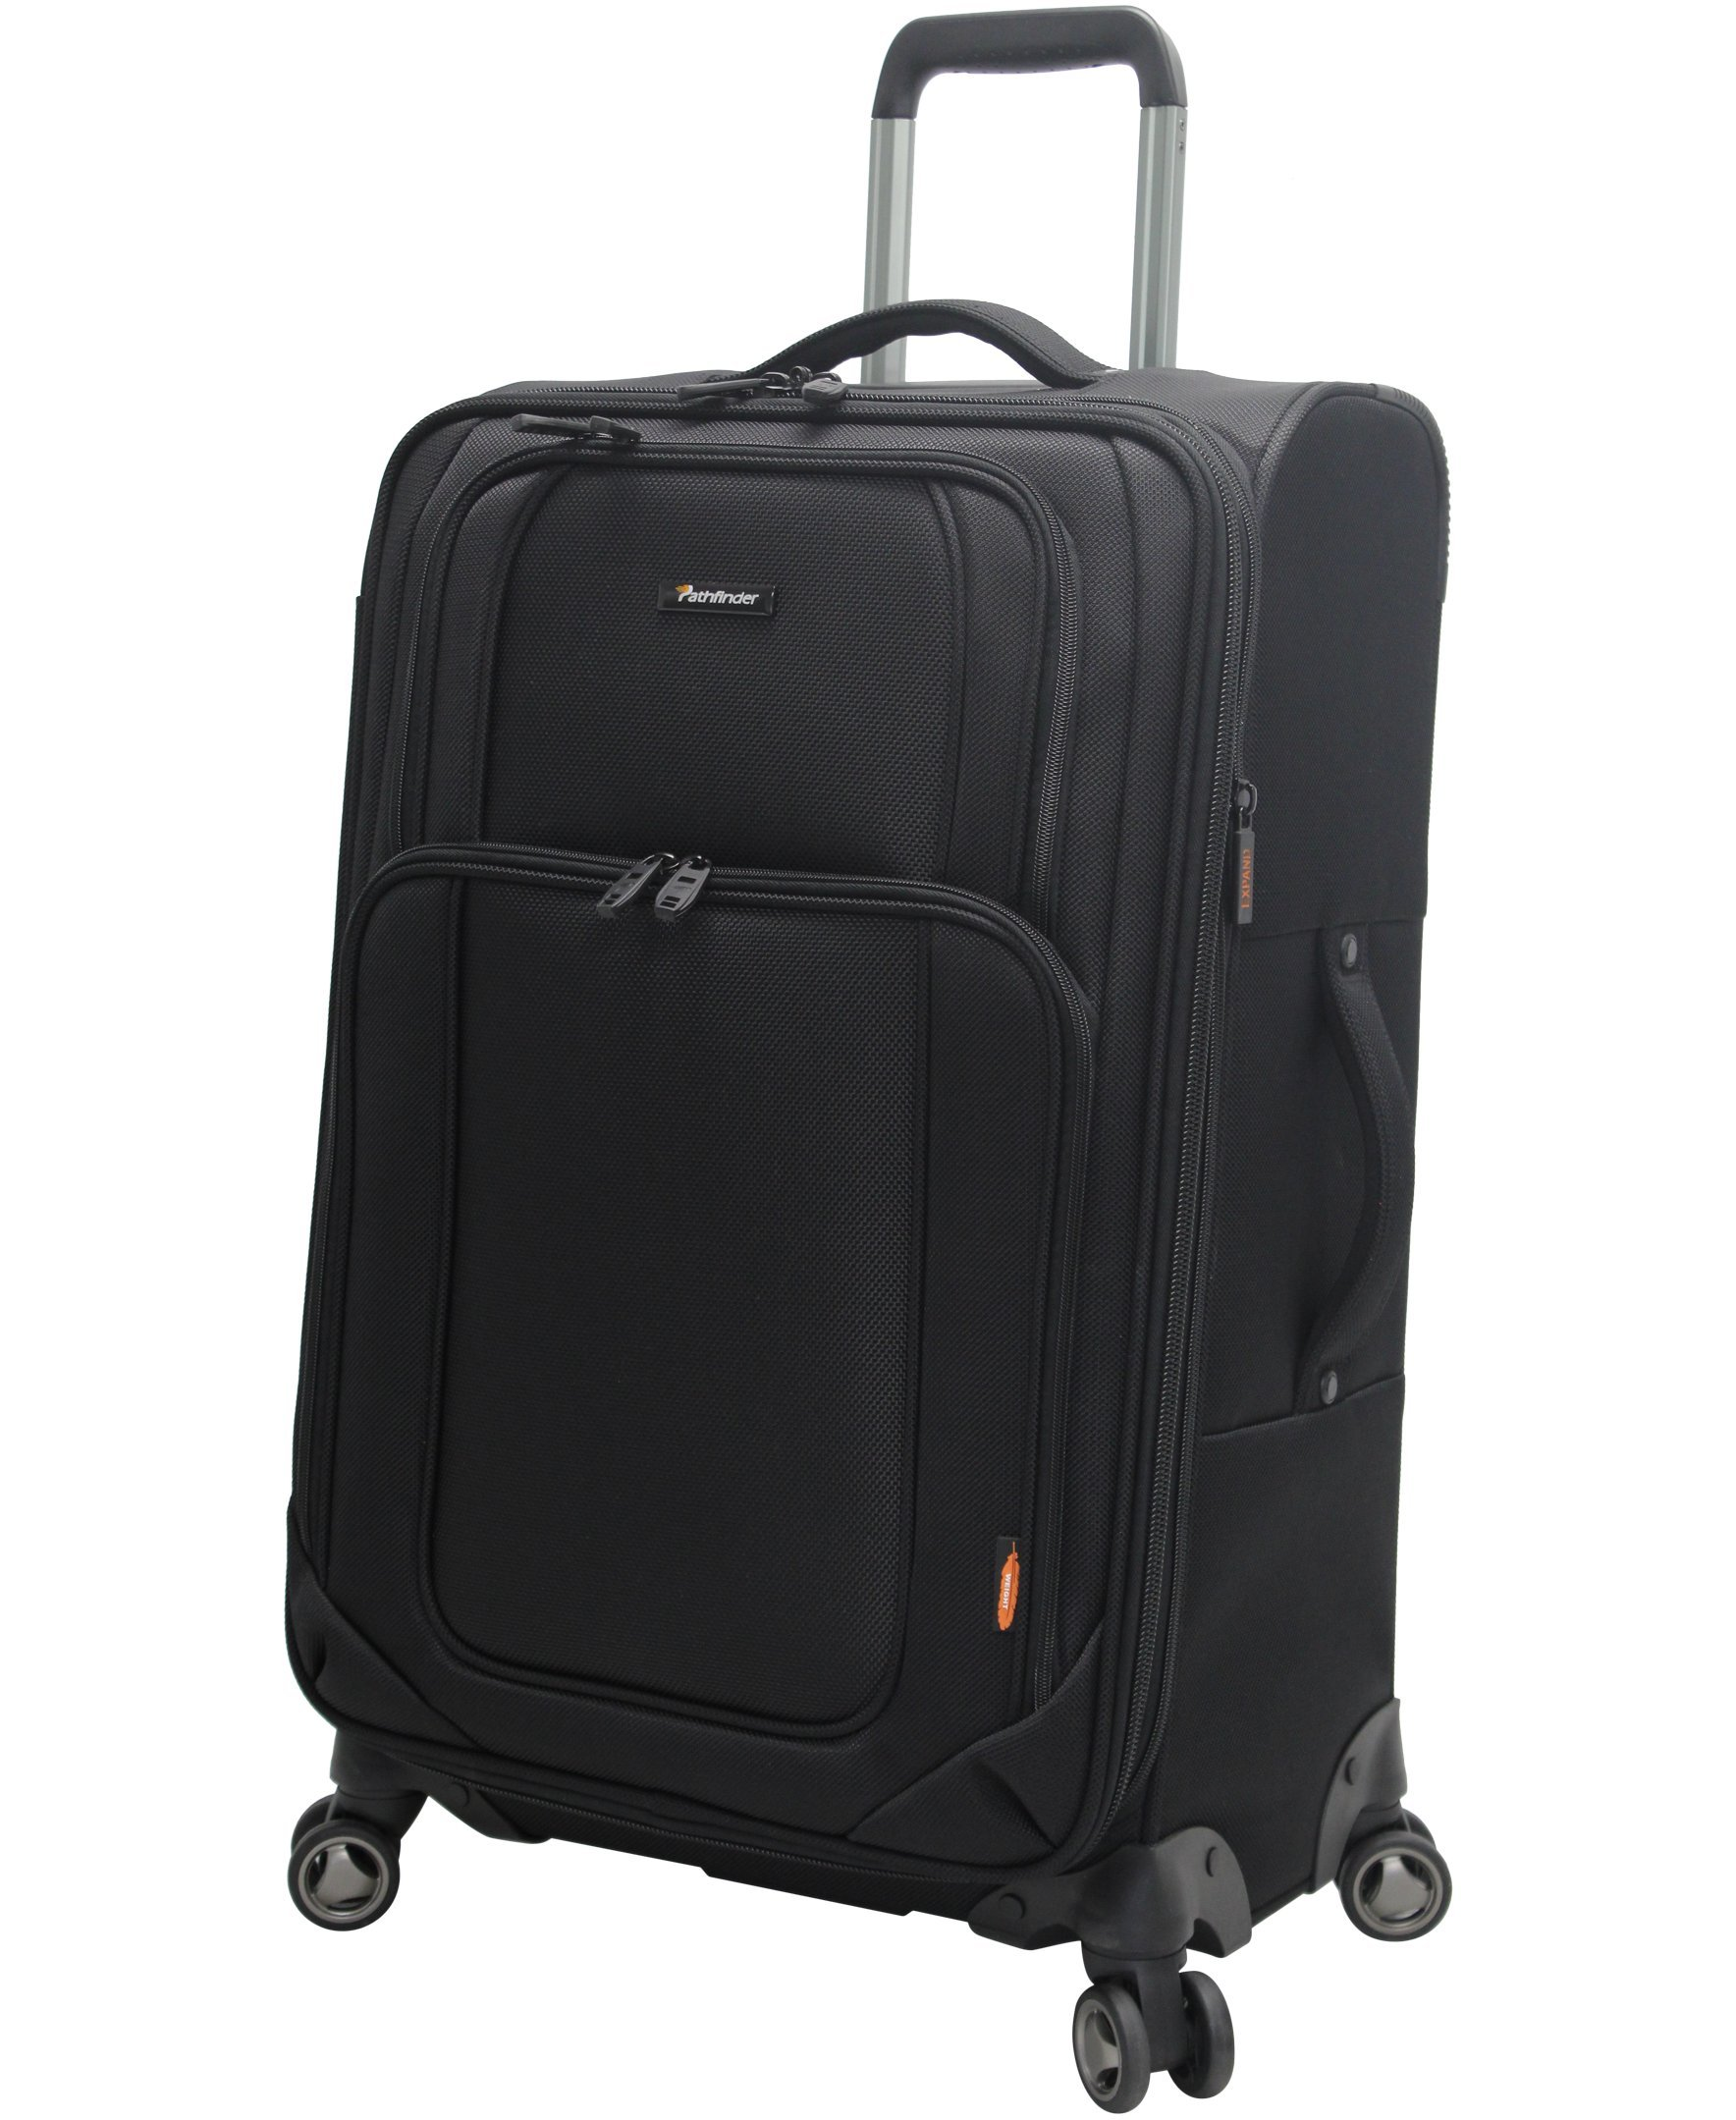 Pathfinder Luggage Presidential Large 29'' Suitcase With Spinner Wheels (29in, Black)